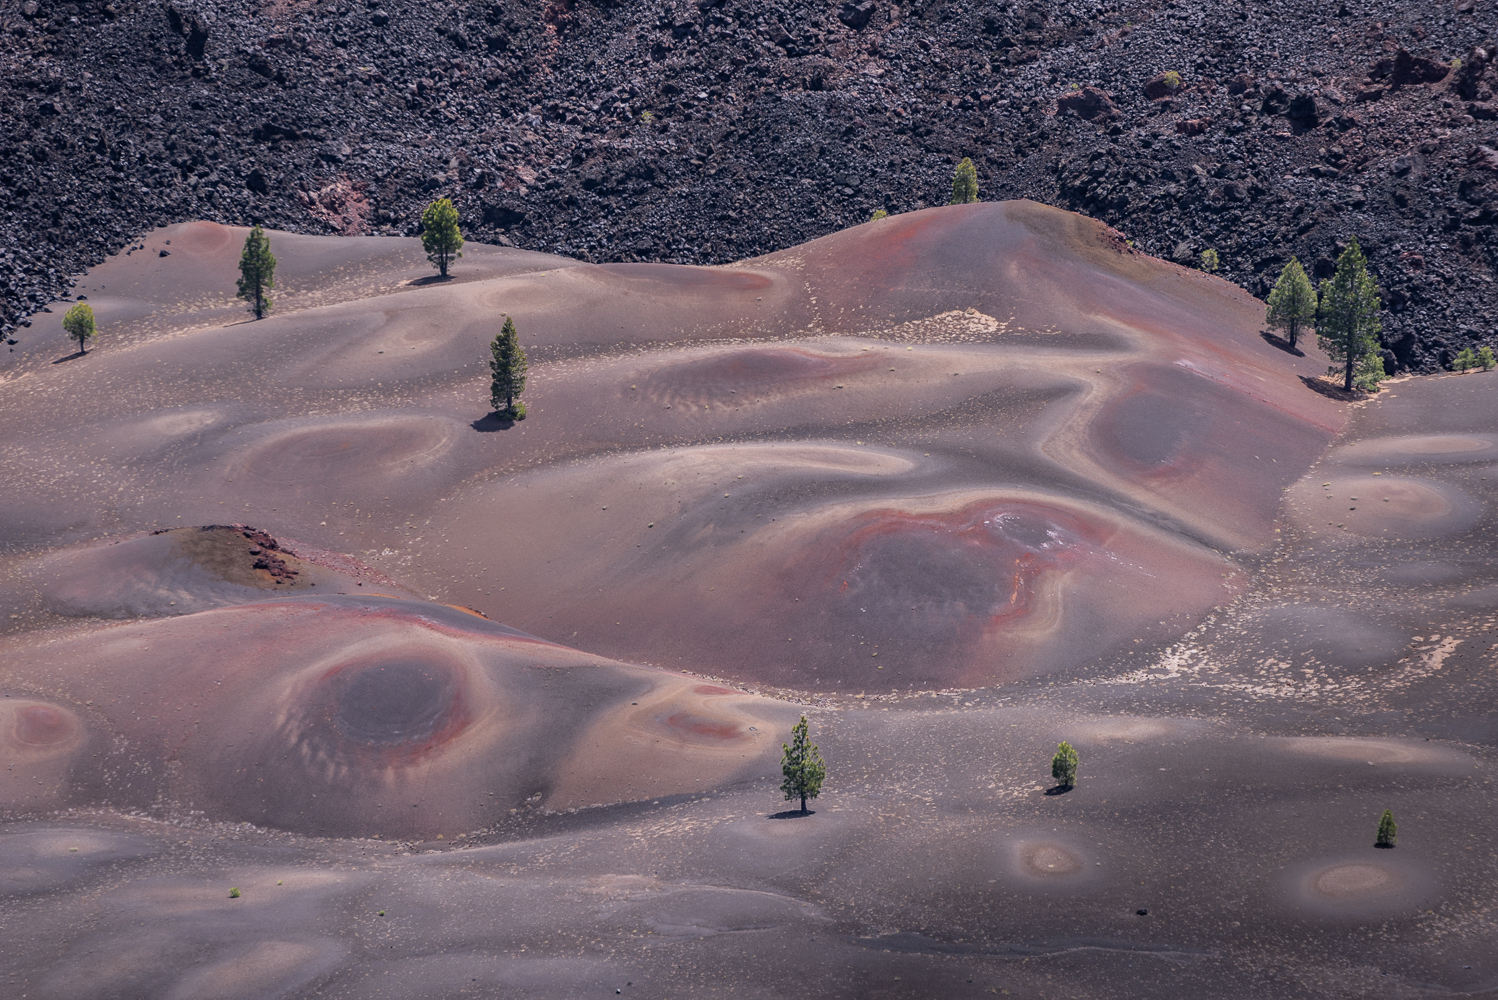 The Painted Dunes and the Fantastic Lava Beds as seen from the top of Cinder Cone, Lassen Volcanic National Park.